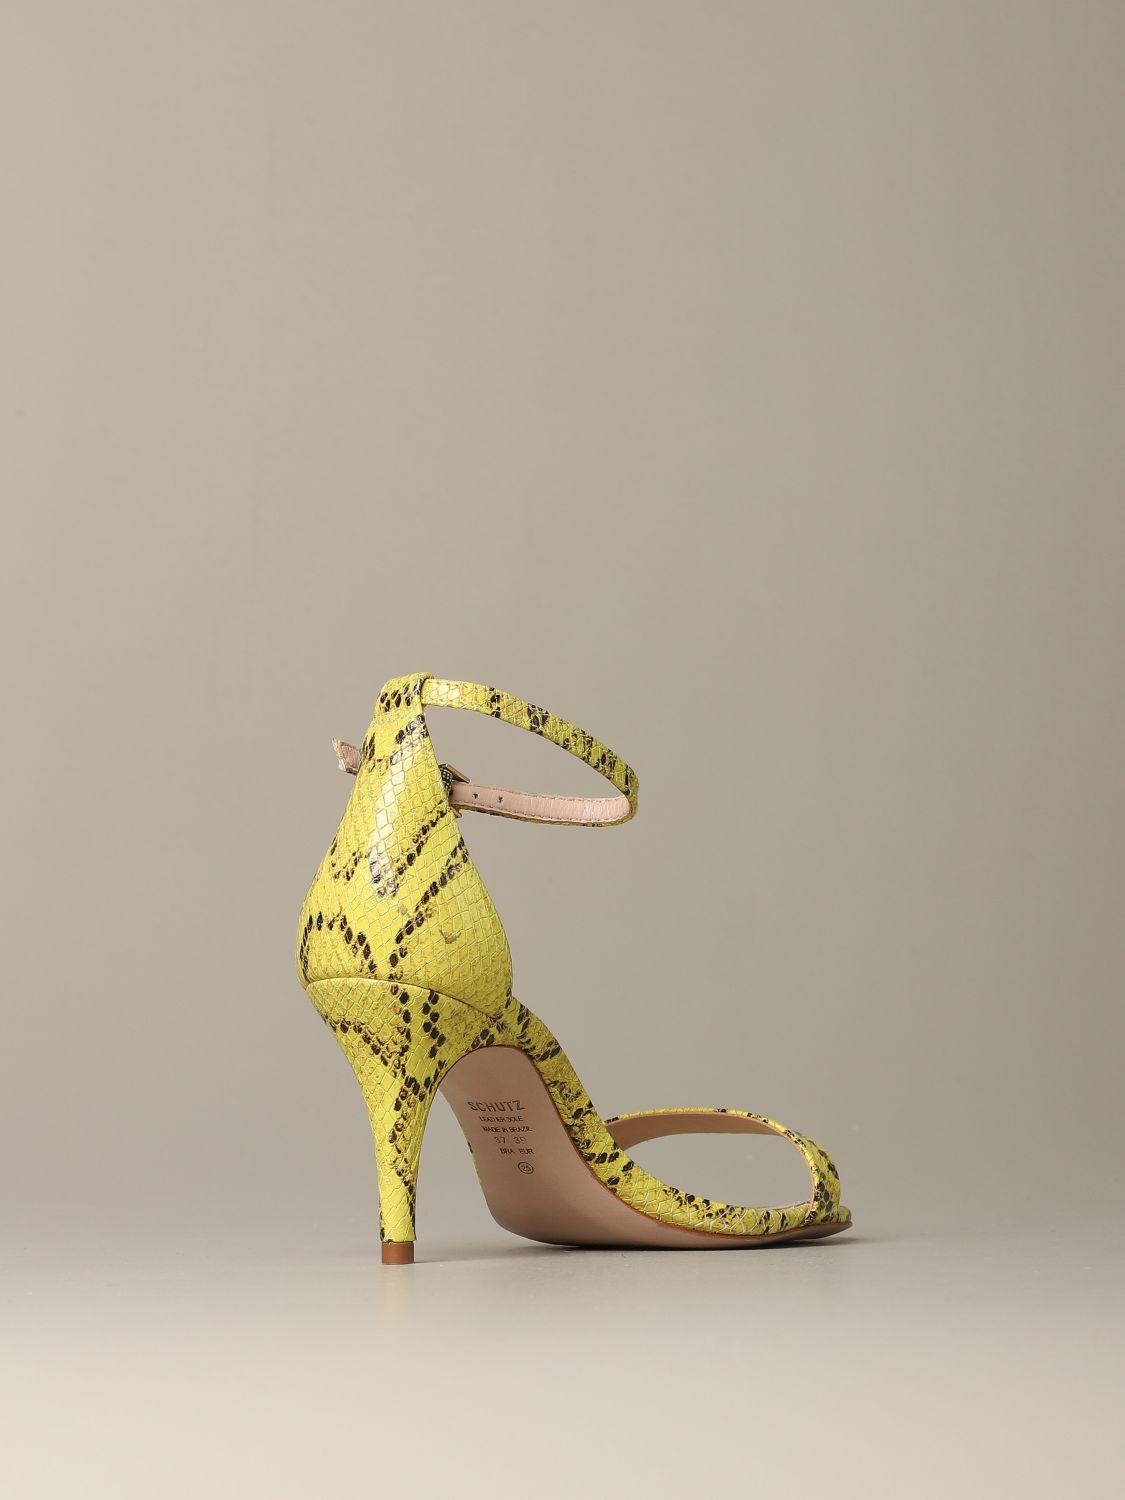 Heeled sandals Schutz: Shoes women Schutz yellow 3